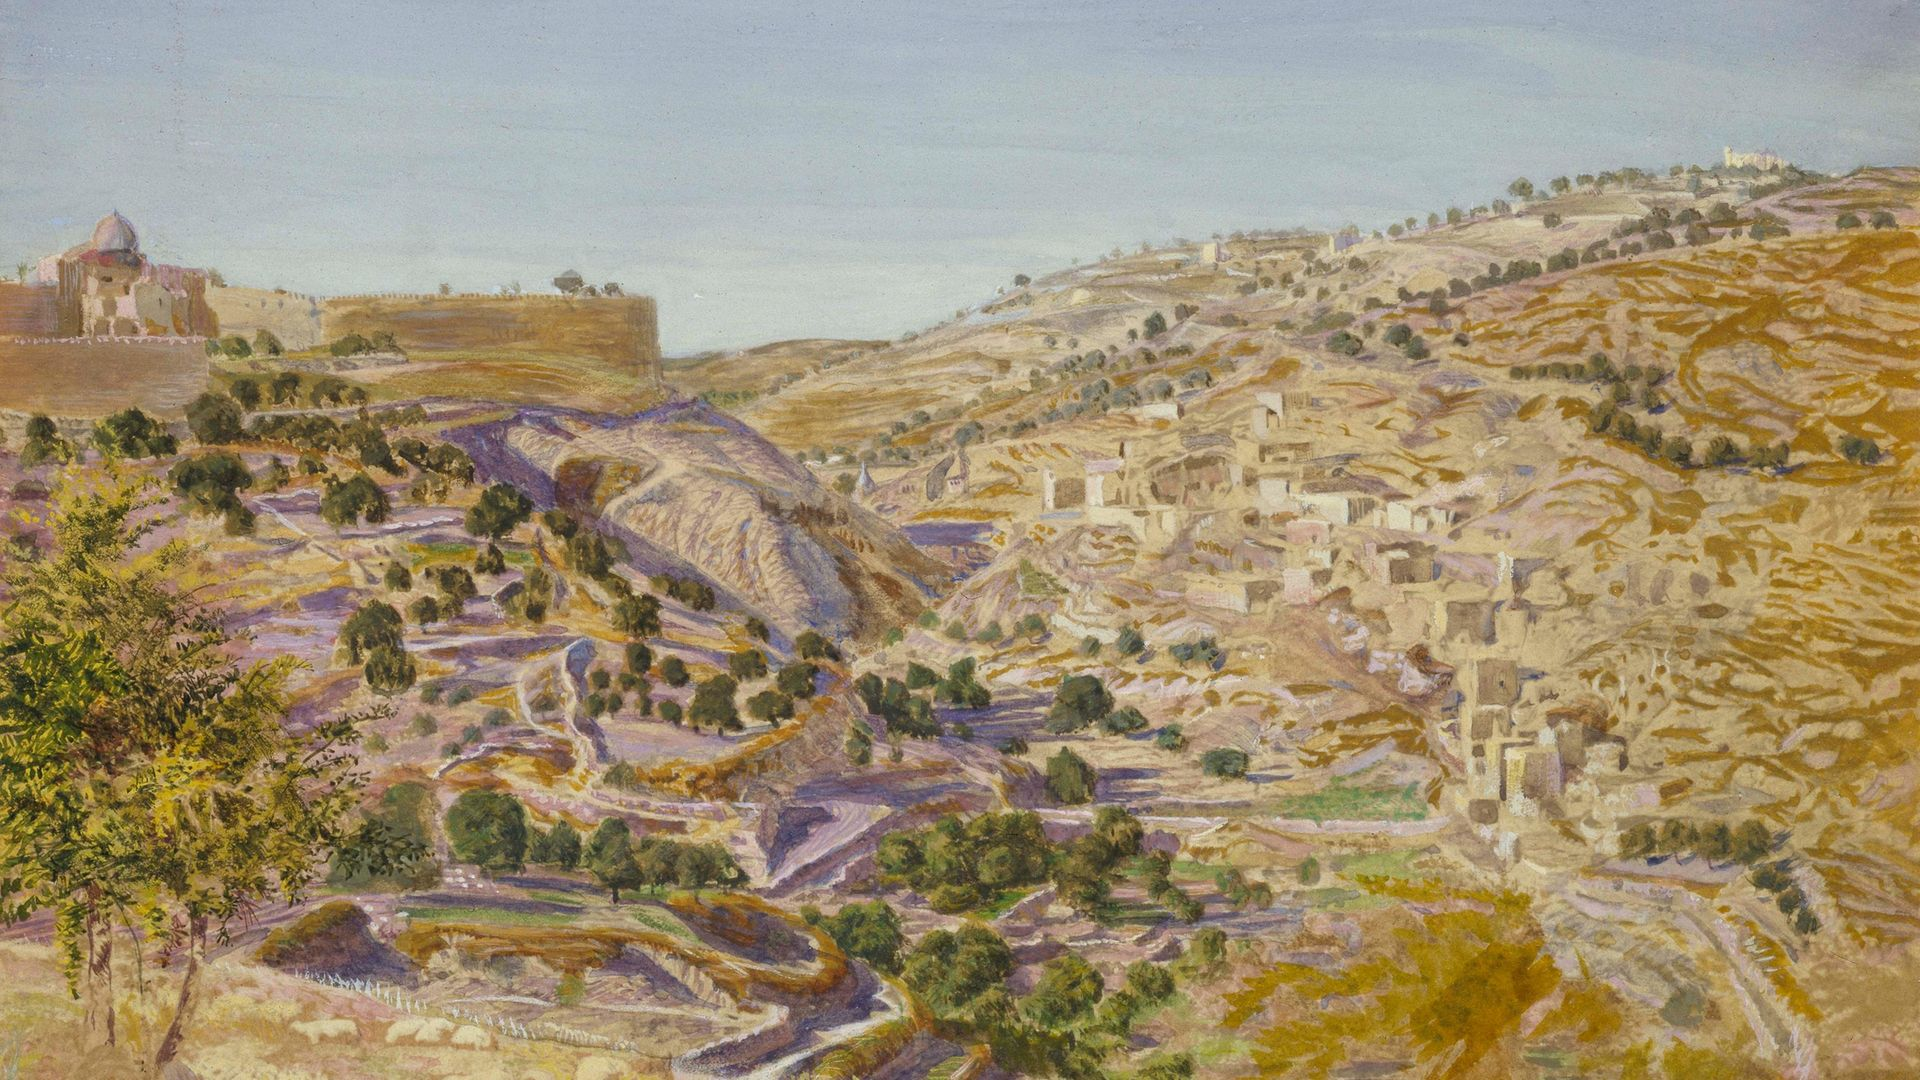 Thomas Seddon Jerusalem and the Valley of Jehoshaphat from the Hill of Evil Counsel - Credit: Ashmolean Museum, University of Oxford